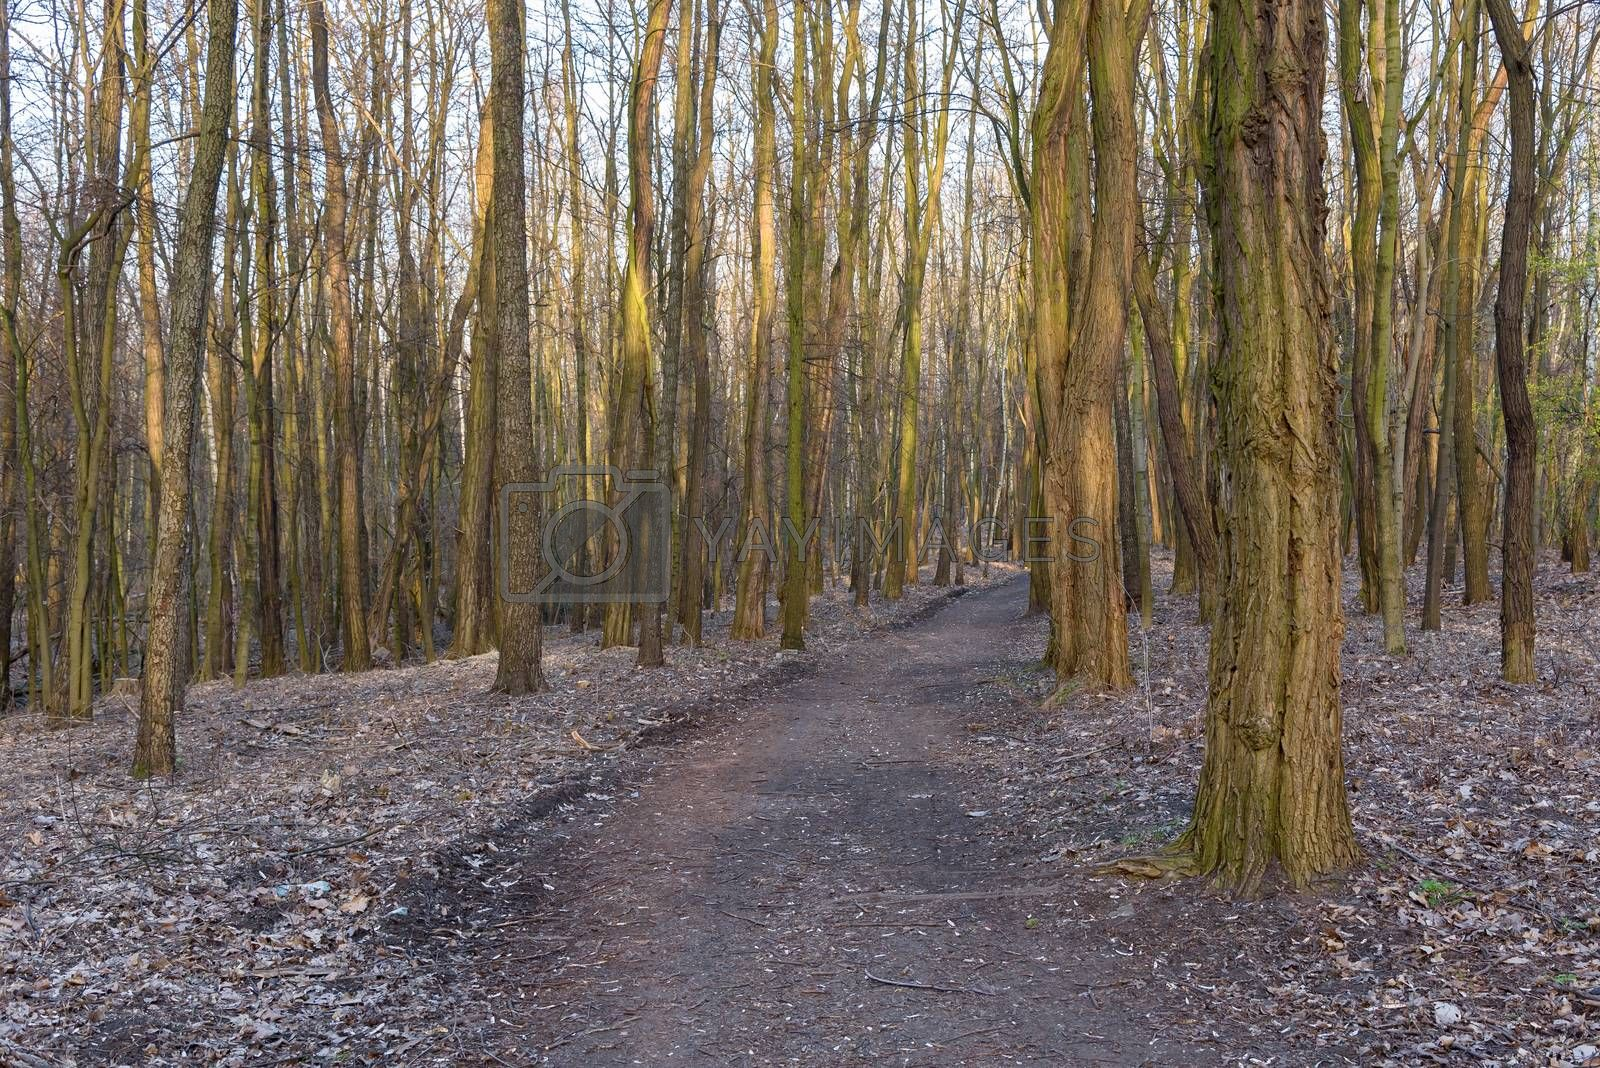 Royalty free image of Dirt path in the Millenium park in Sosnowiec by mkos83